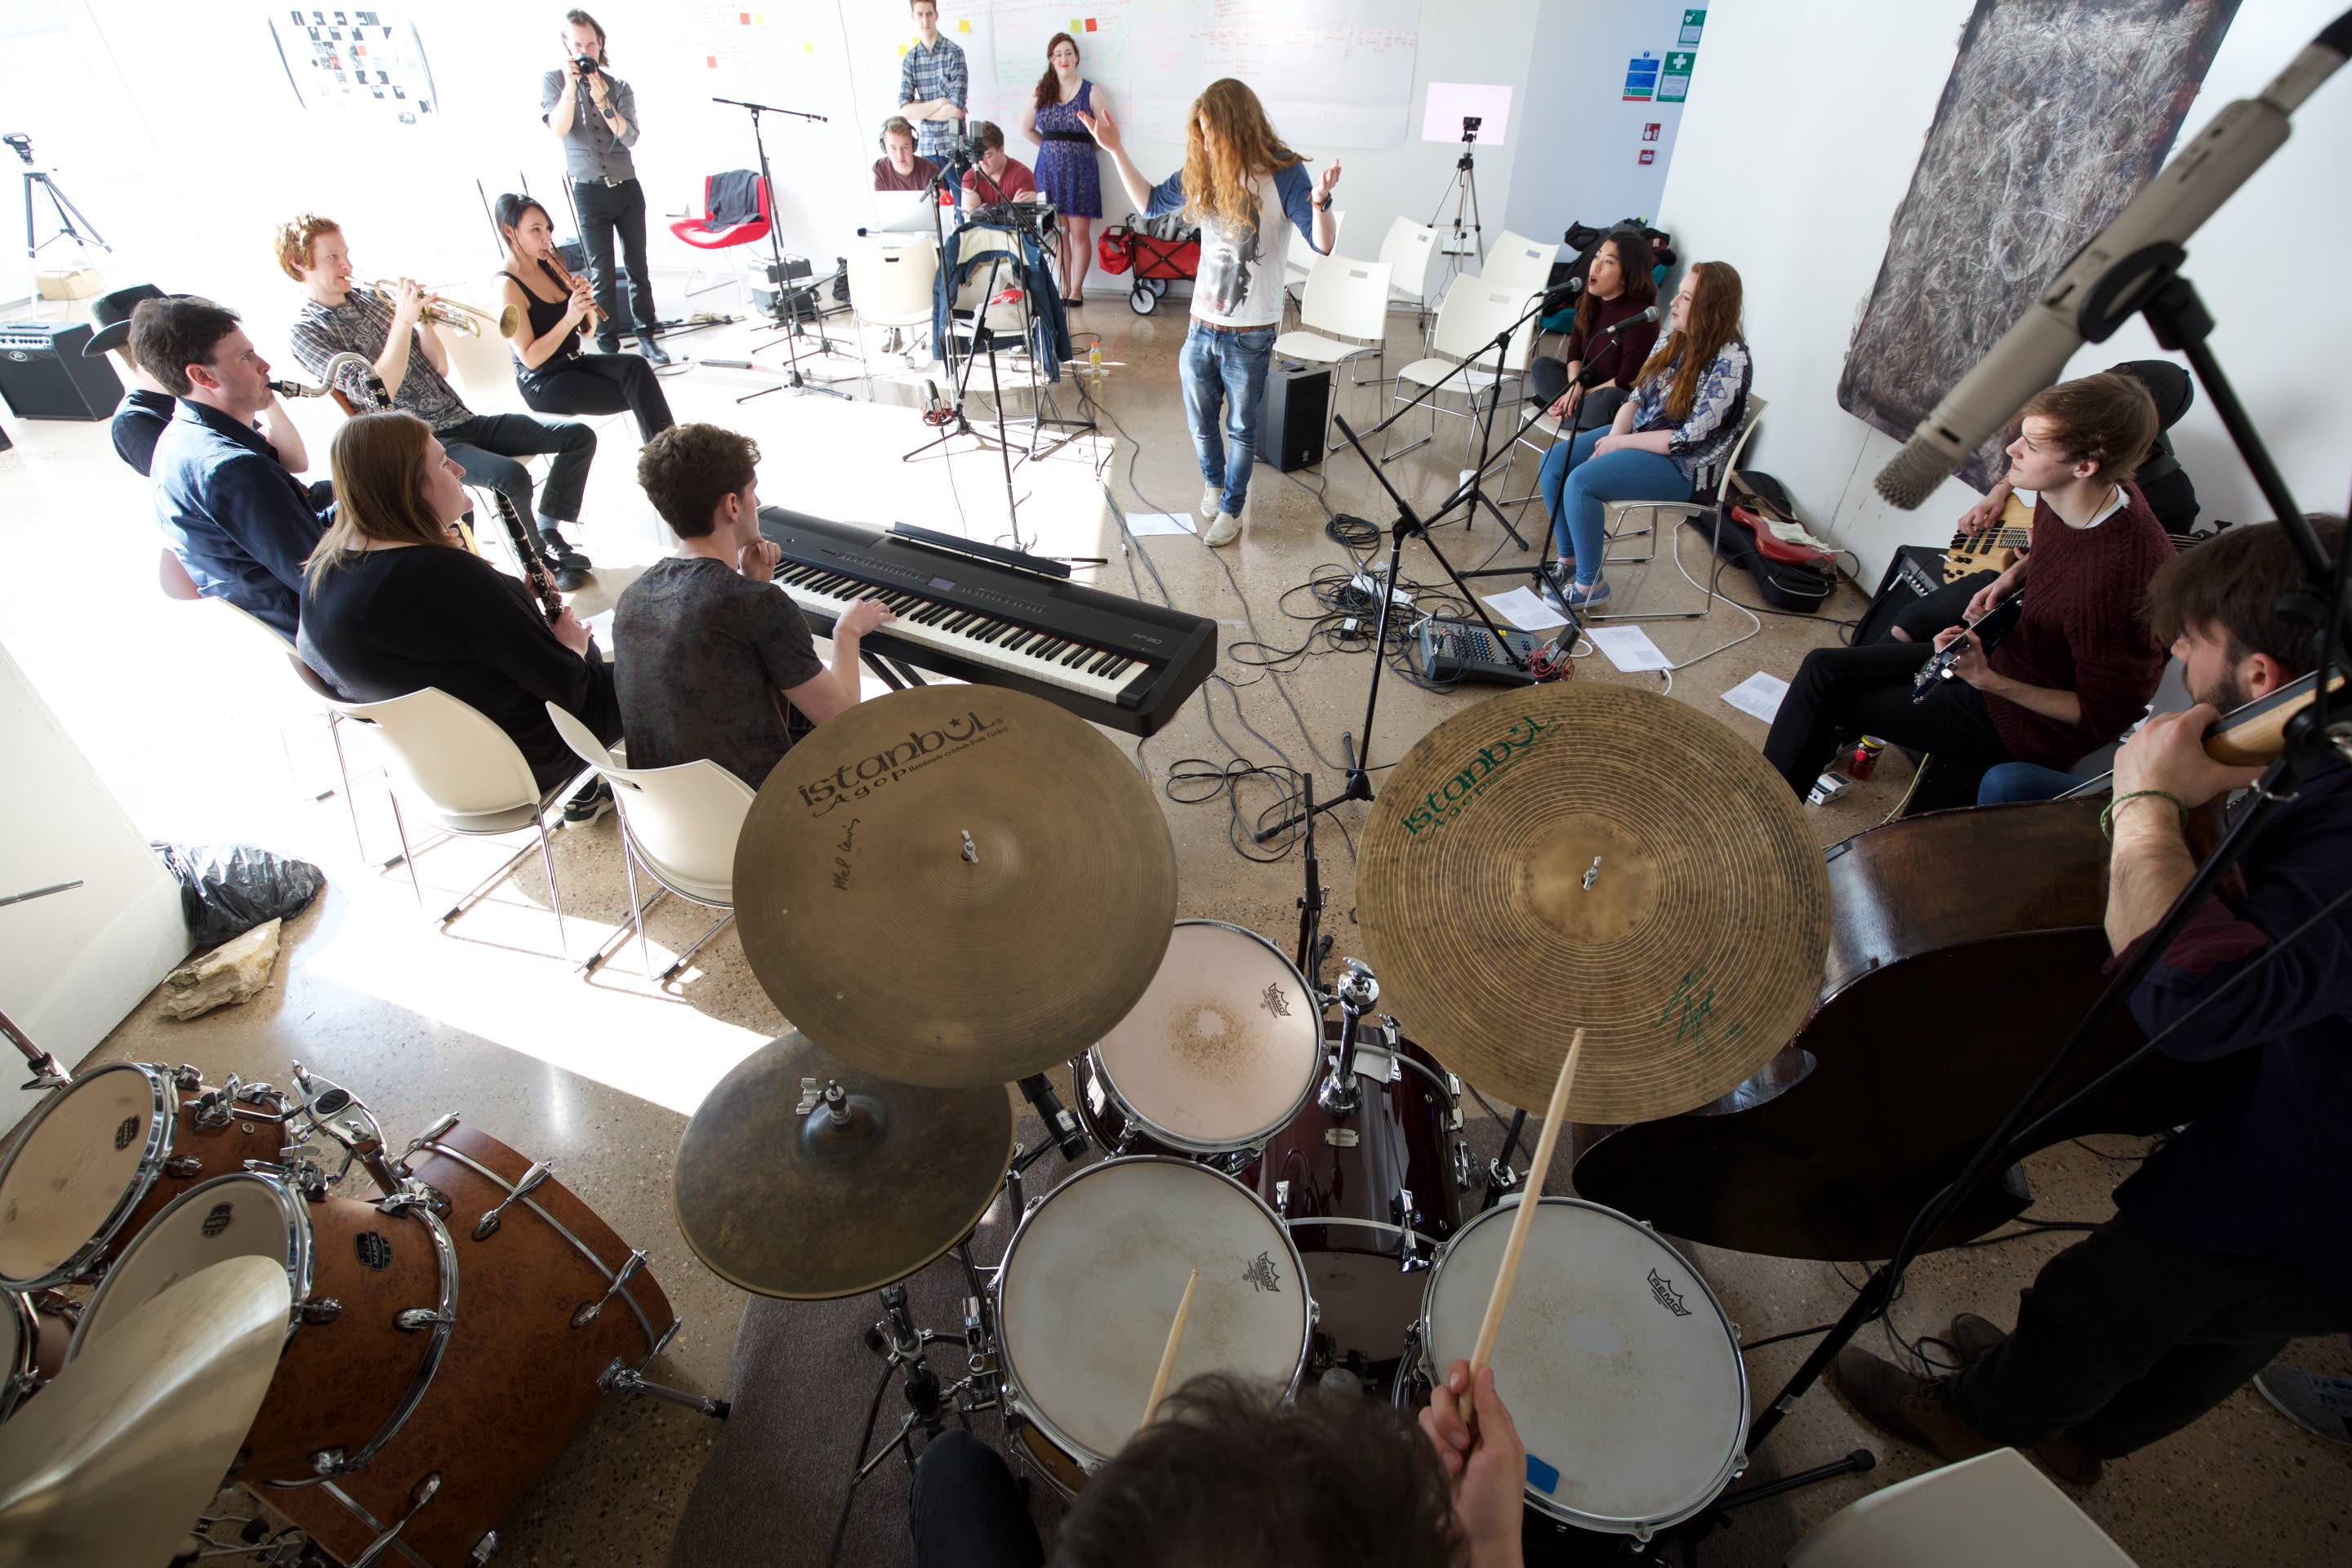 Free Improvisation workshop with Valia Calda | BA Music - Levels 1 & 2 | Credit: Lincoln School of Fine and Performing Arts